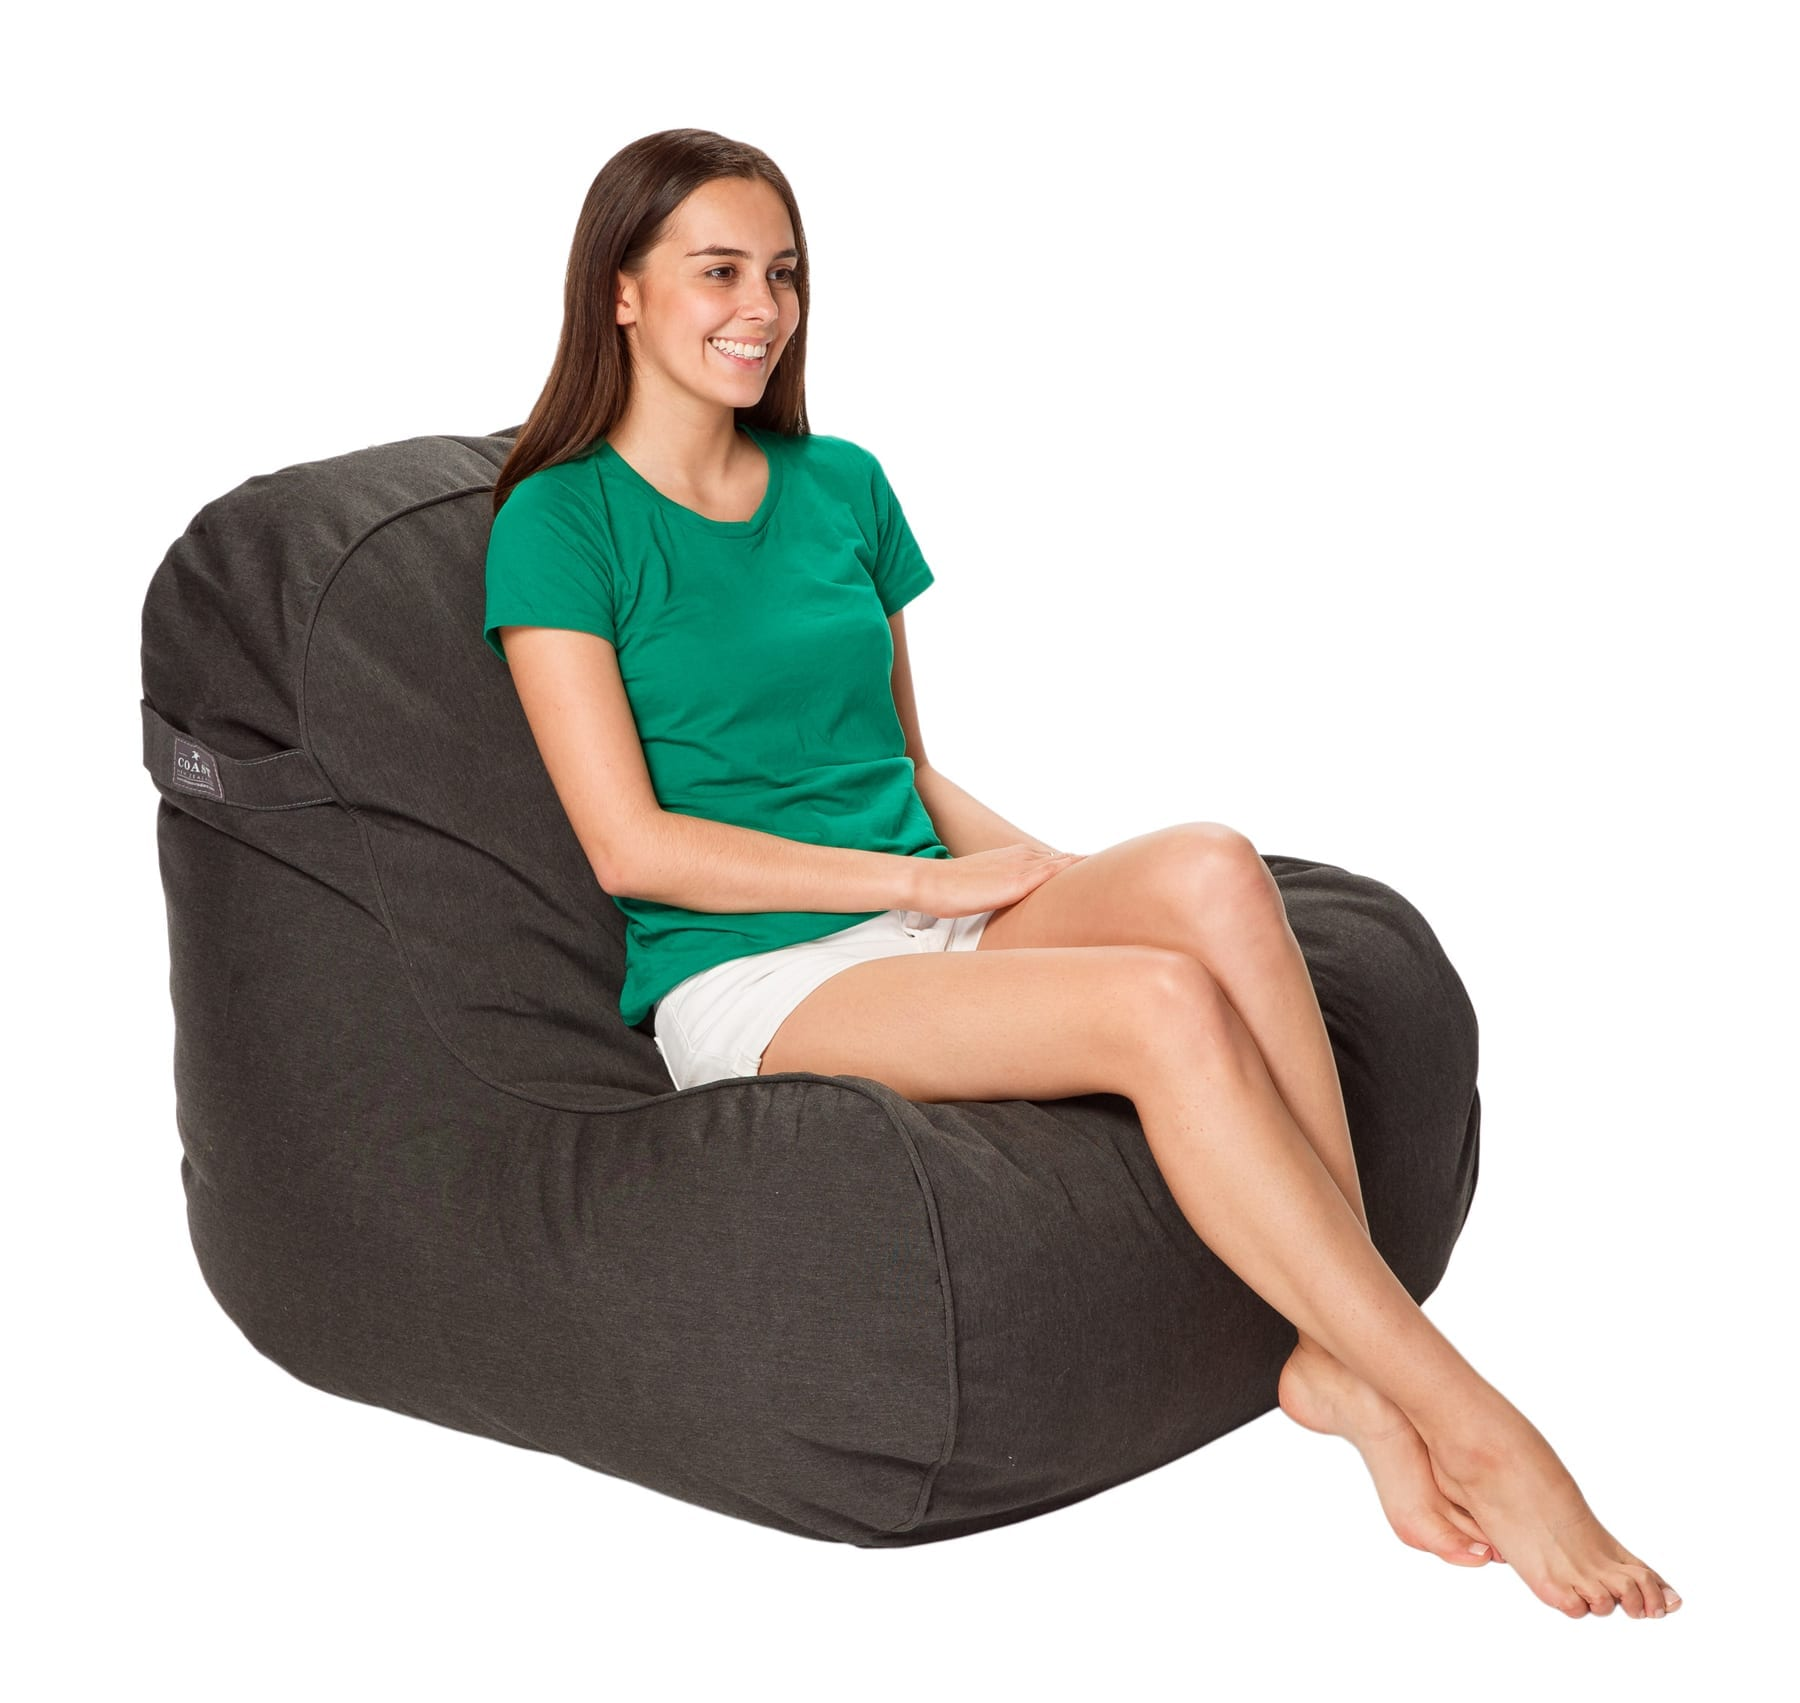 boat bean bag chairs swivel chair base replacement coast marine unfilled mckenzie and willis